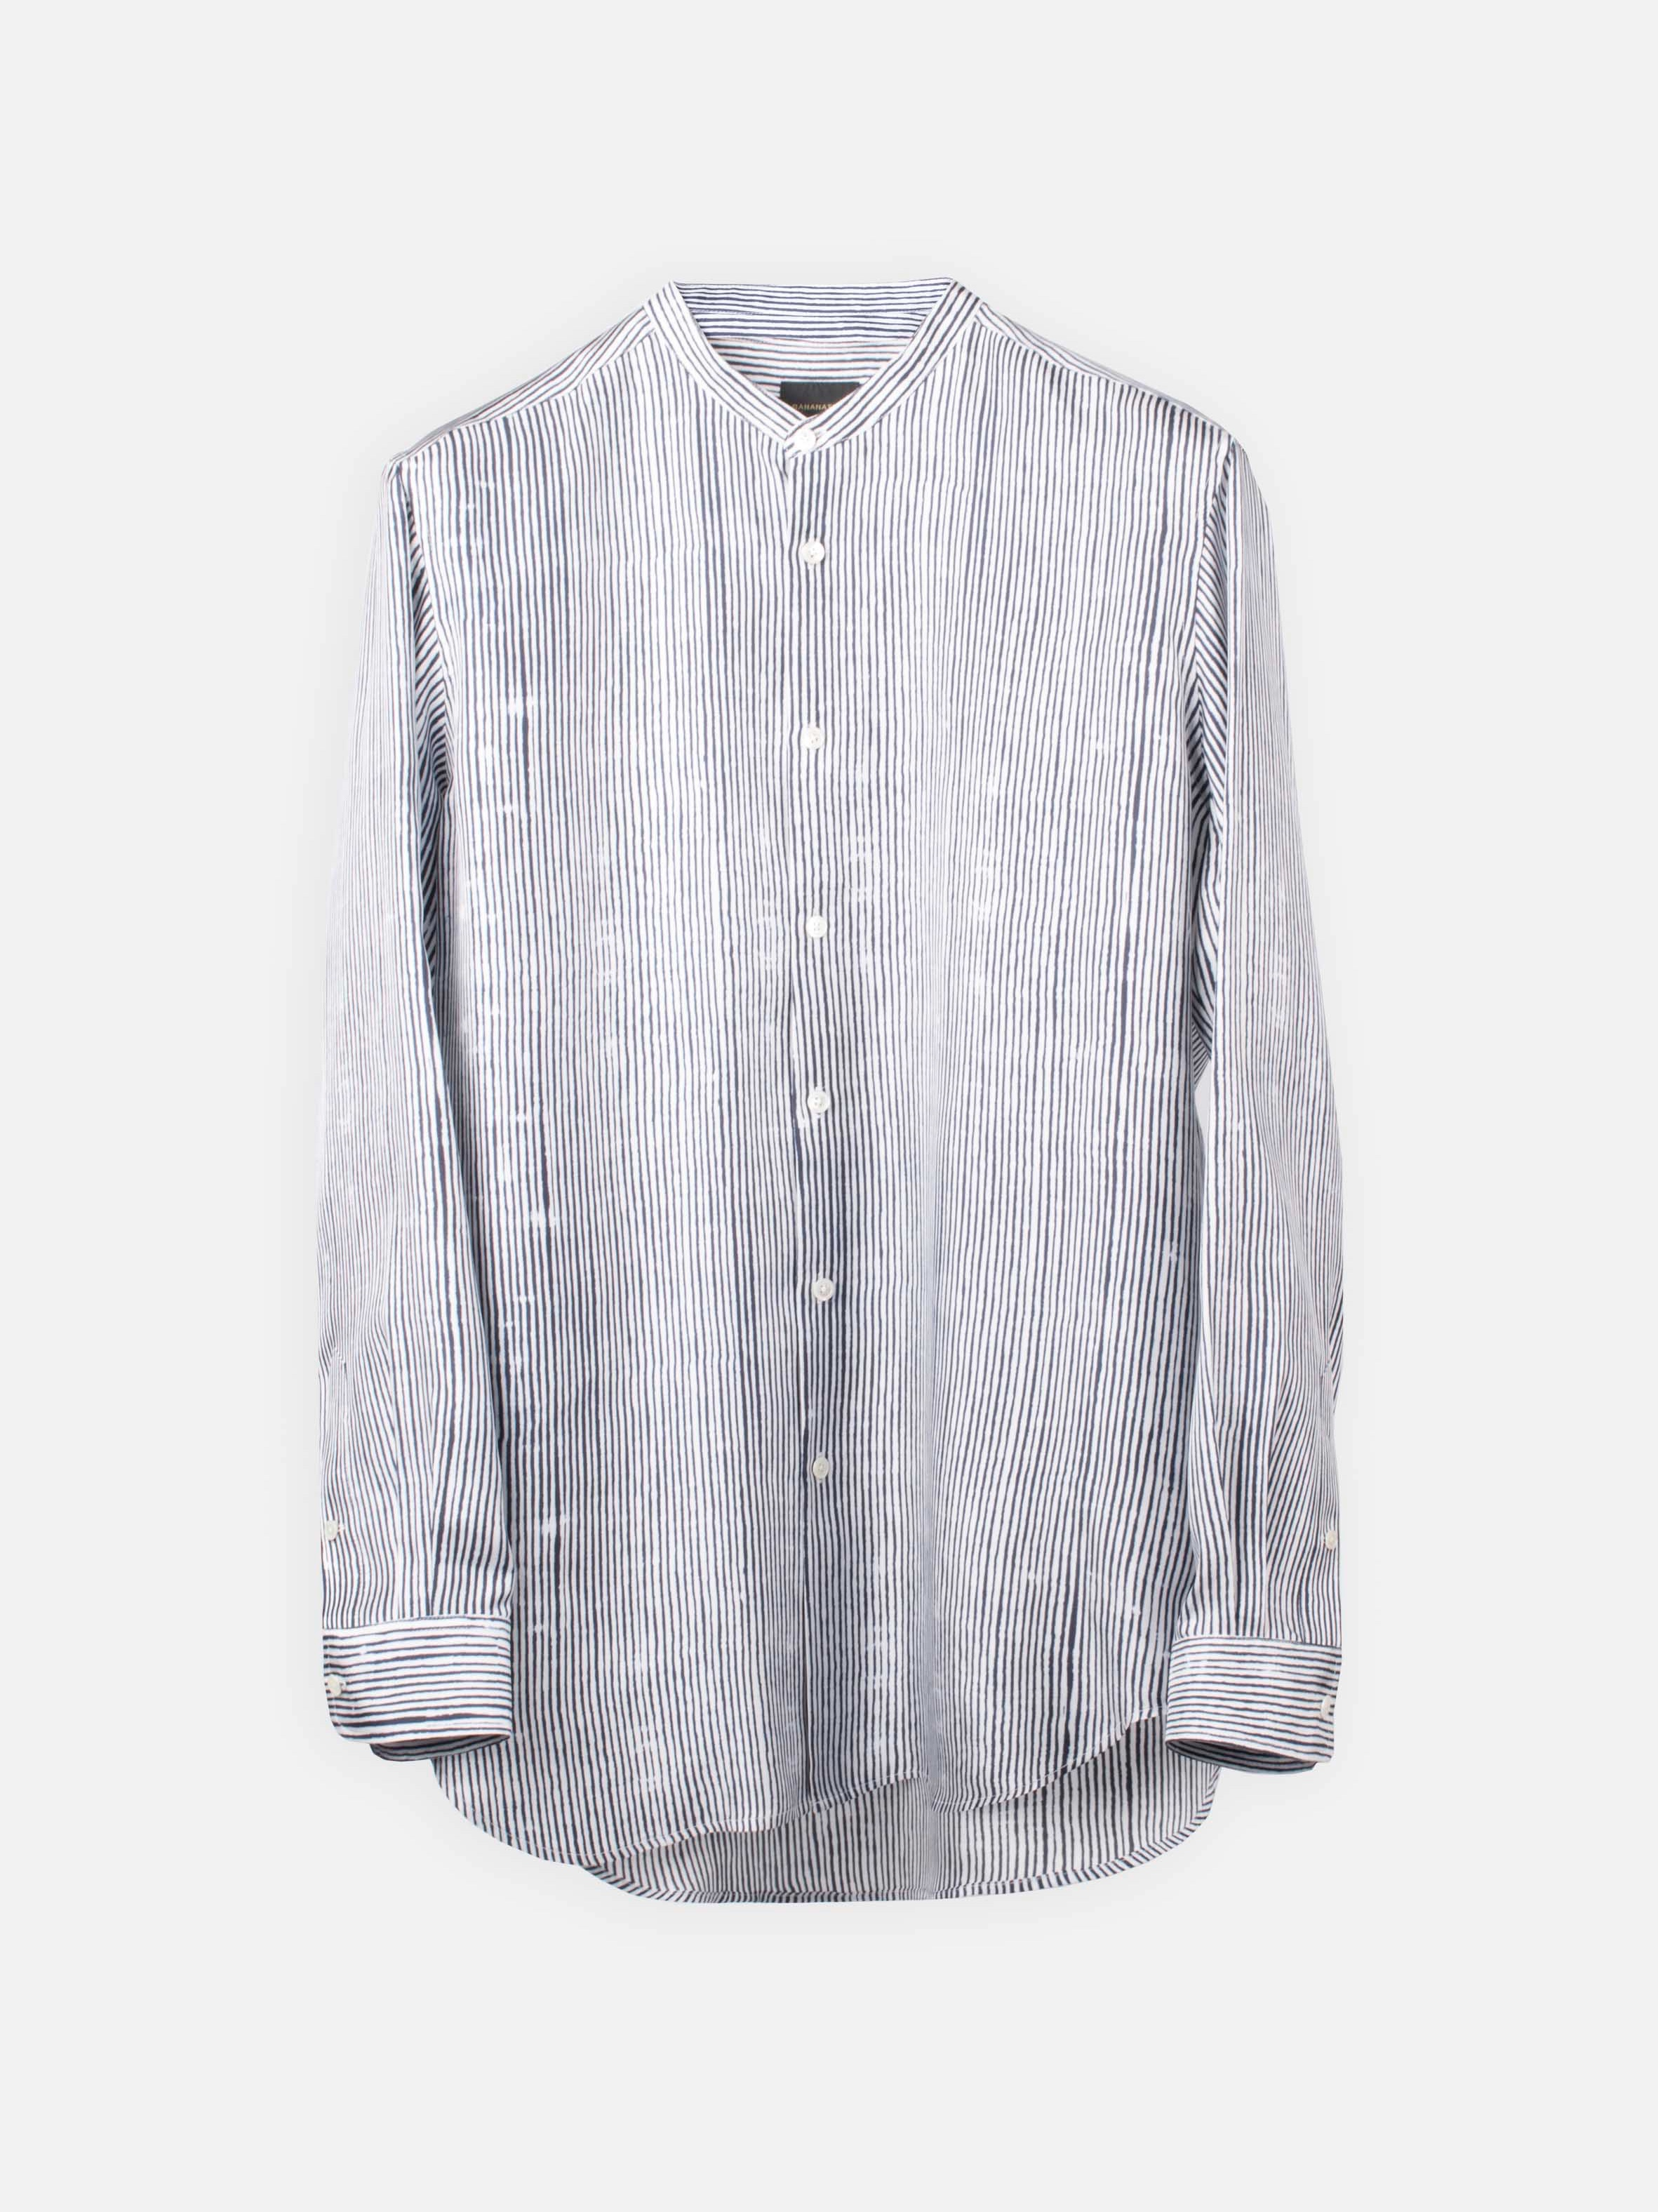 SLIM GRANDAD SHIRT:Bamboo Stripes White4